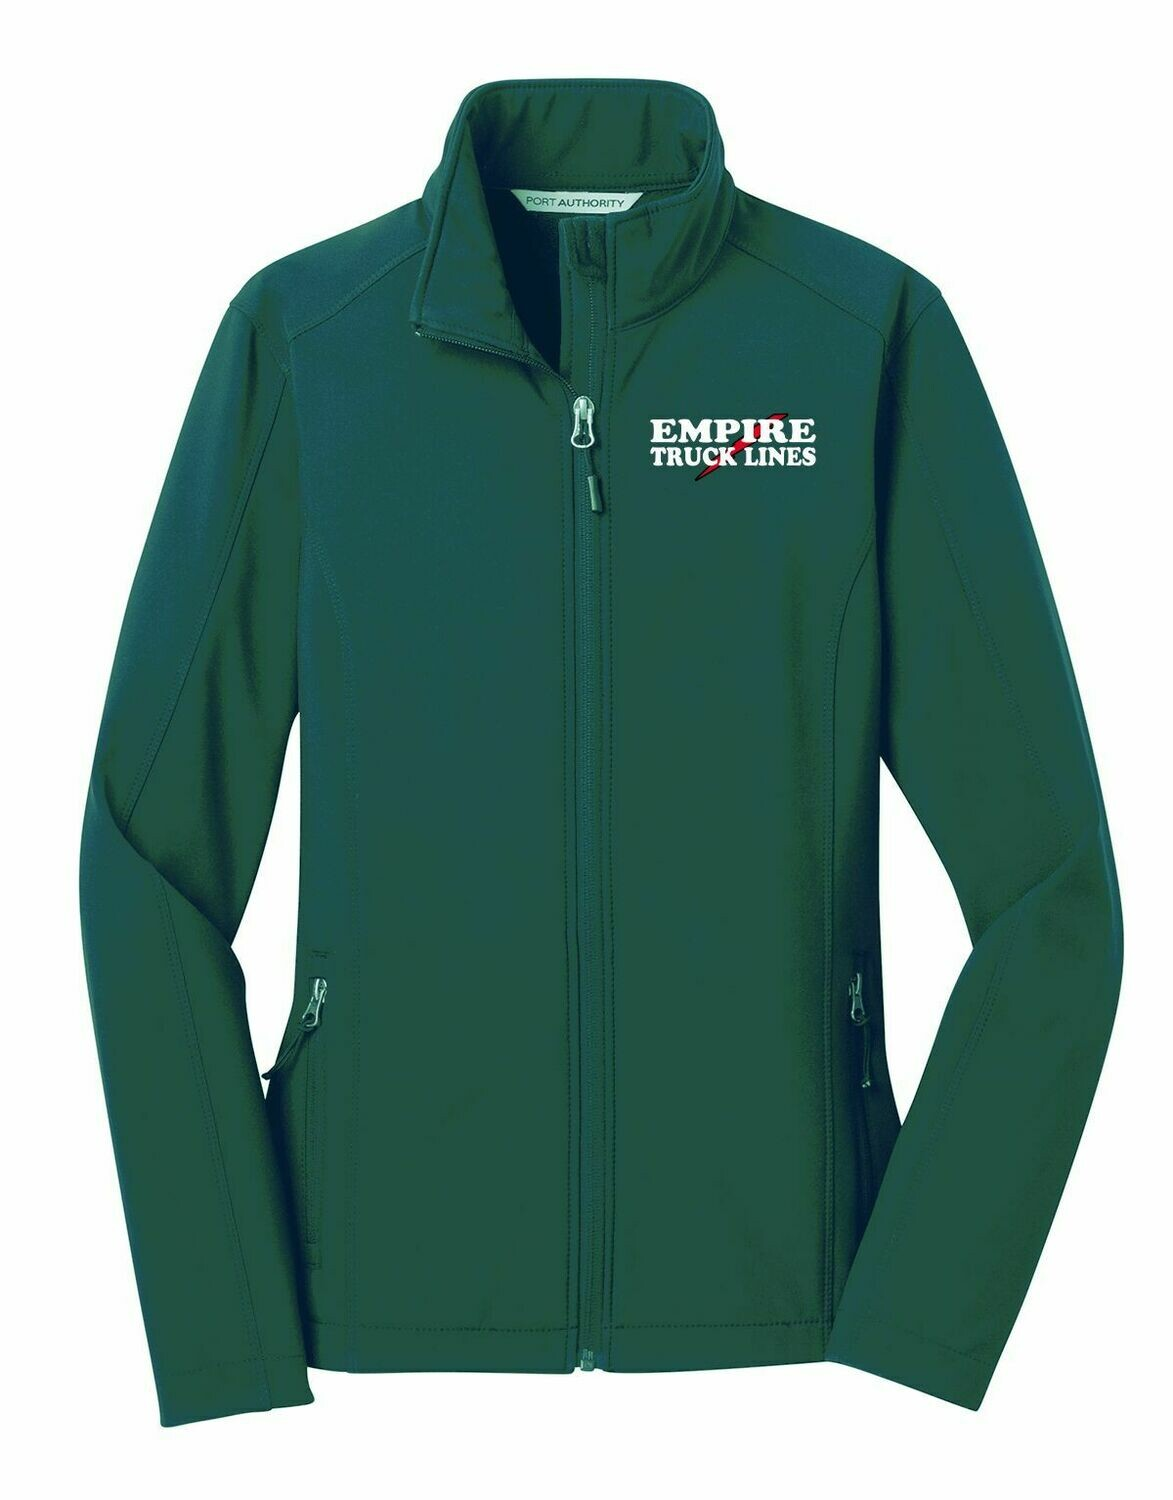 Empire Trucking Embroidered Ladies Jacket